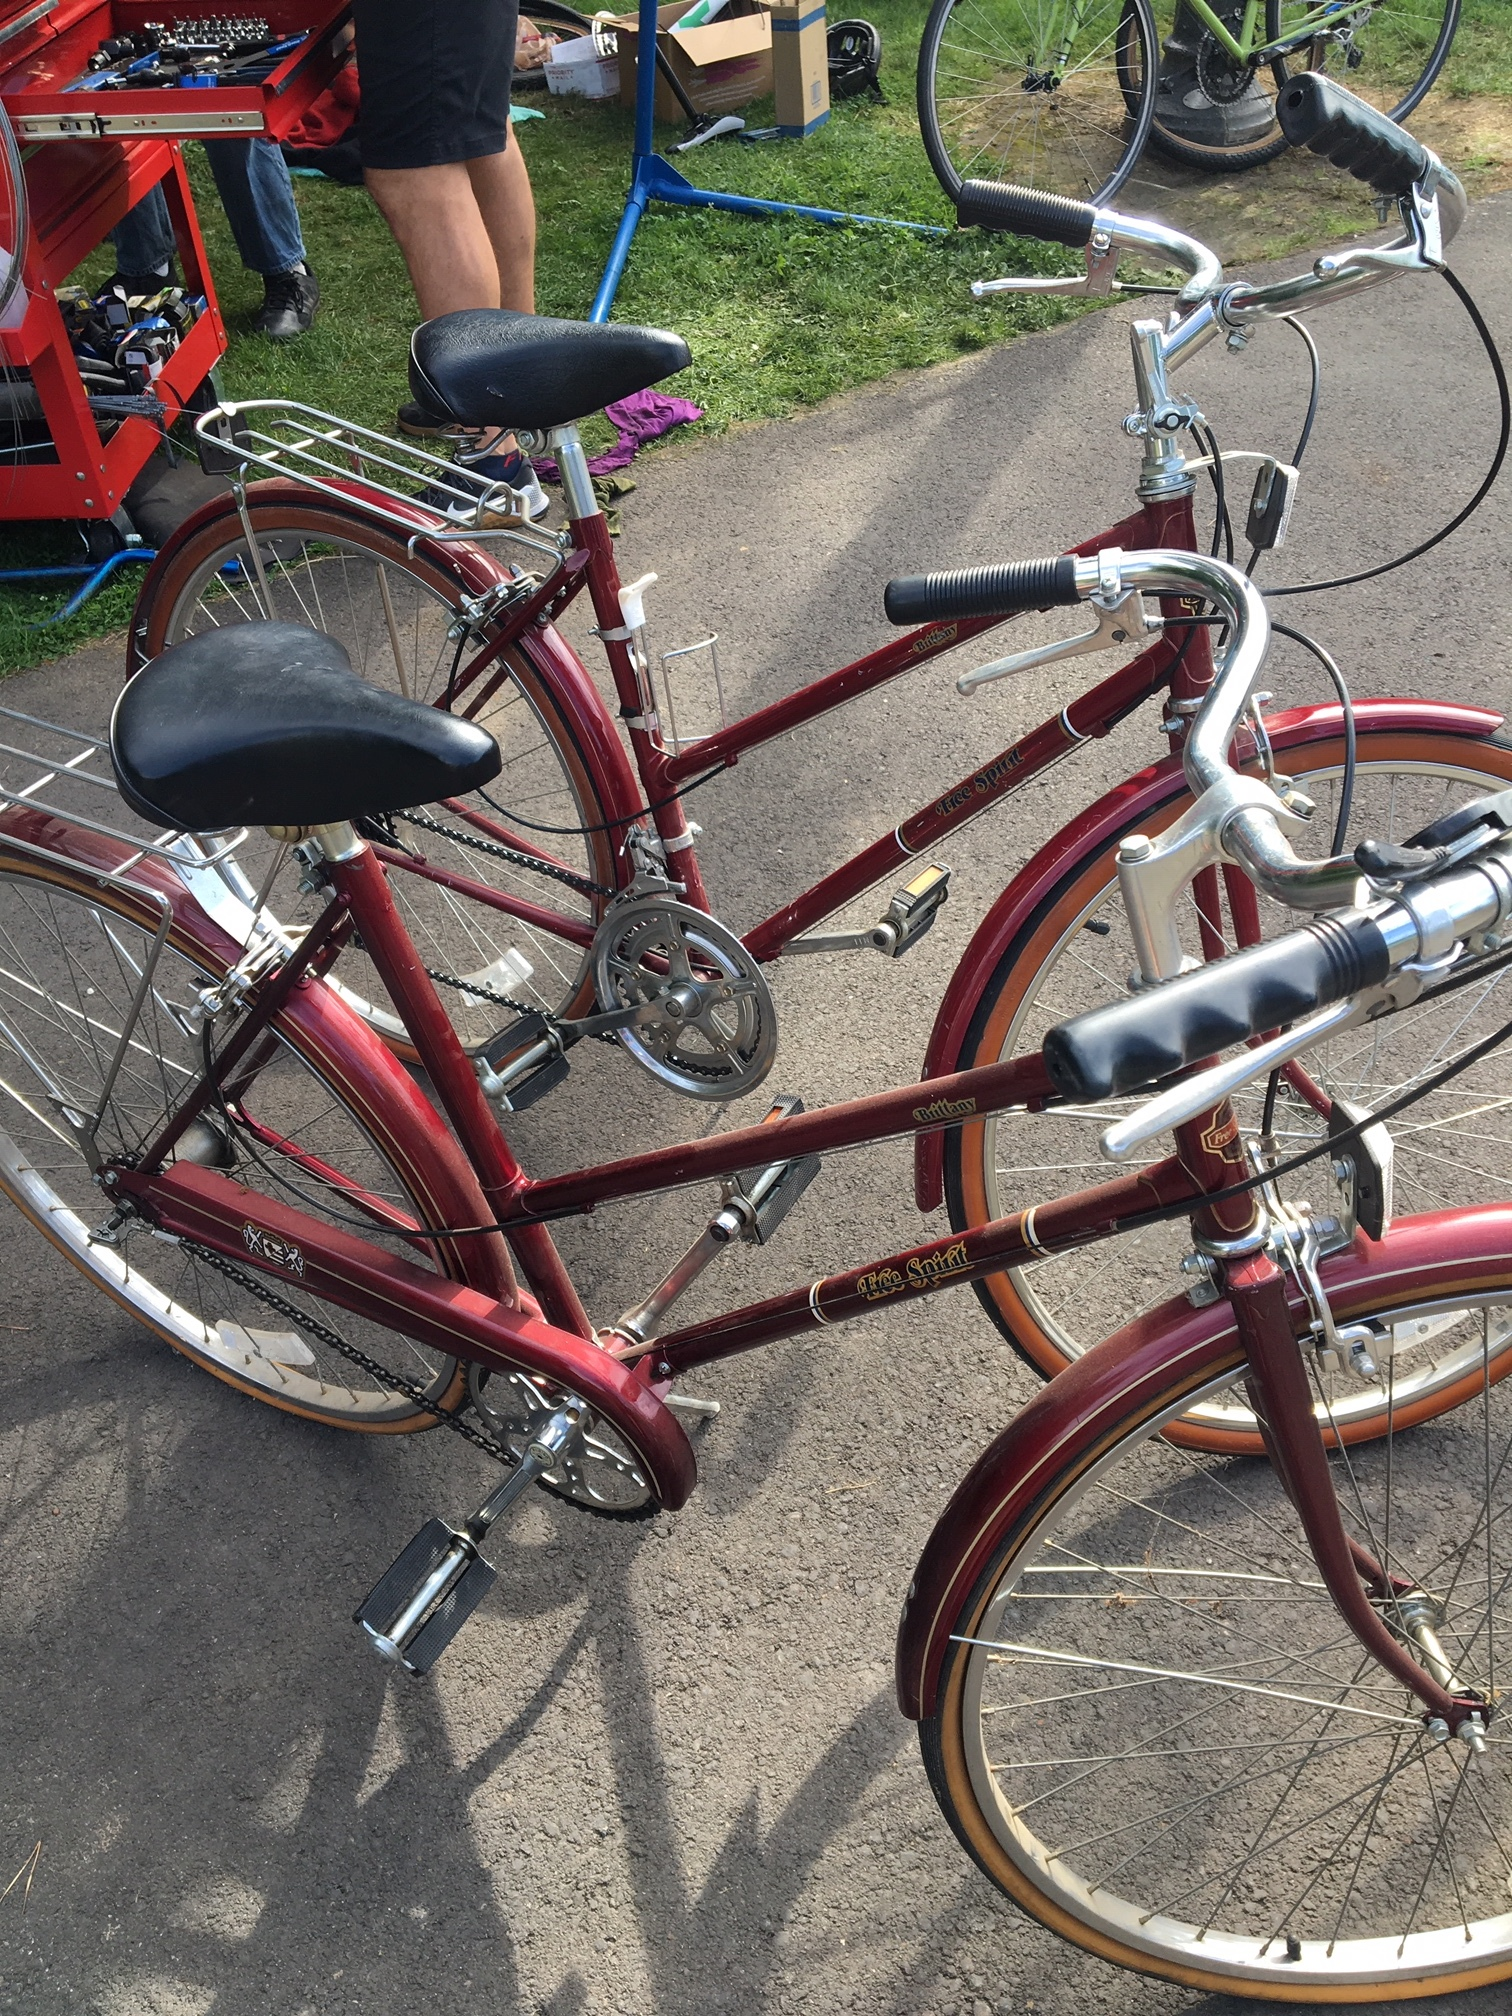 1 day, 1 make/model (Free Spirit Brittany), 2 different donors, 2 different bikes